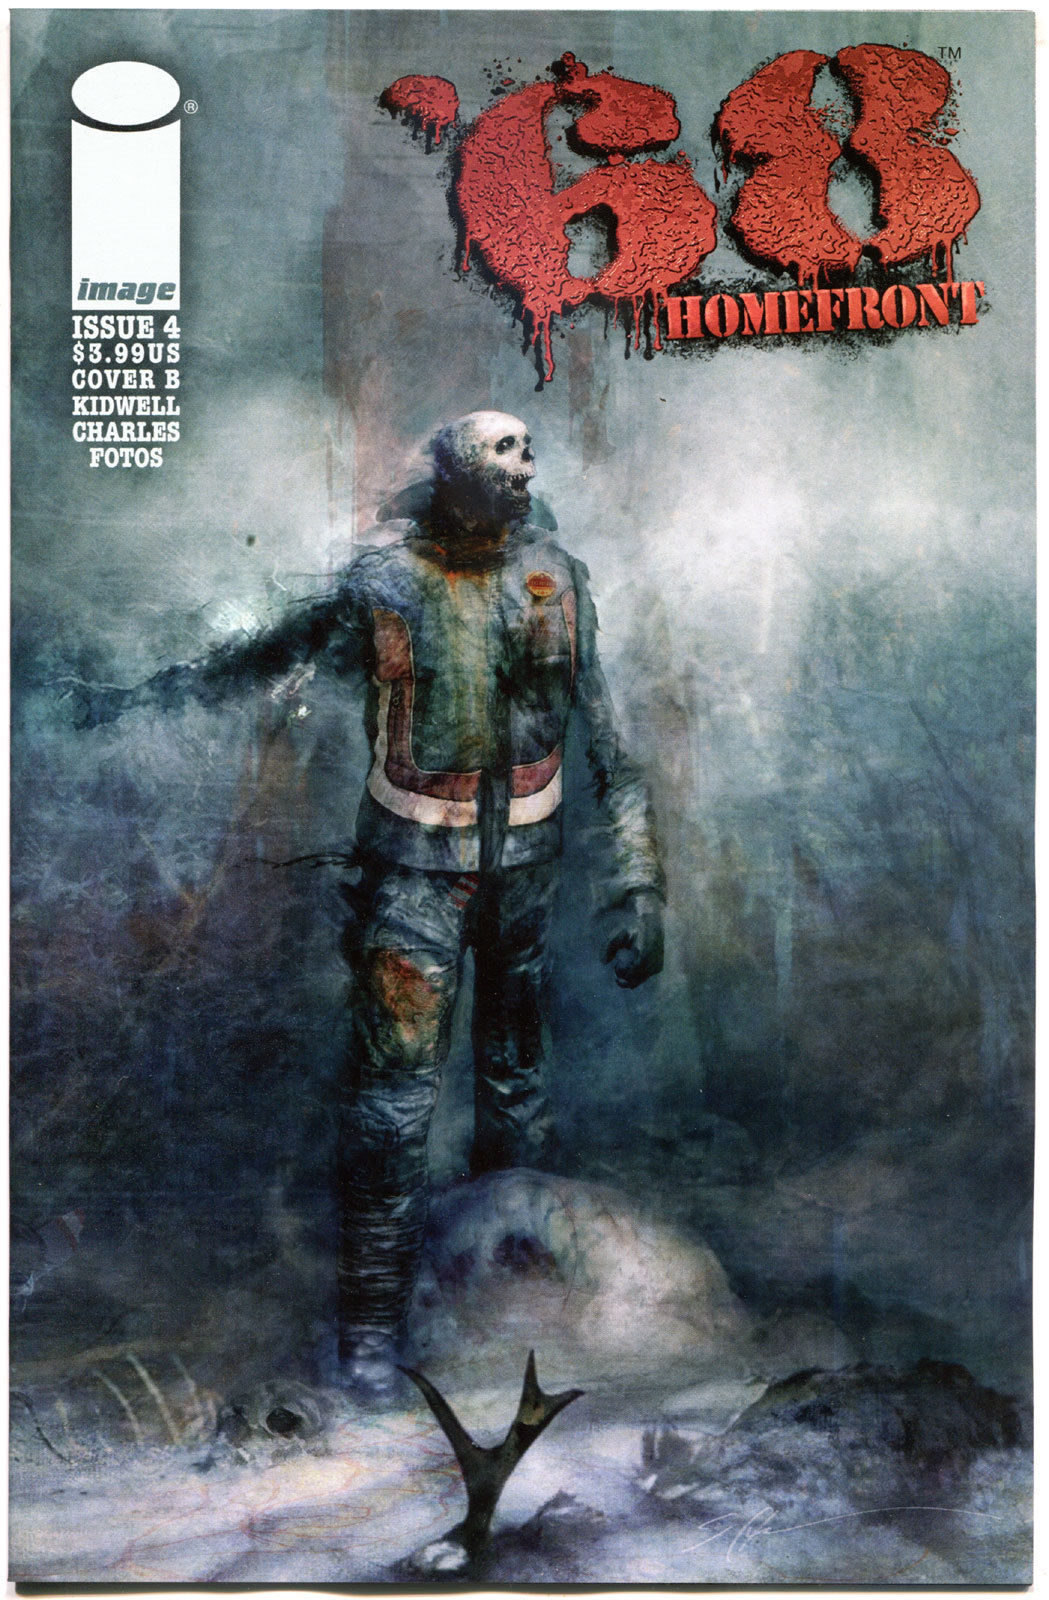 '68 HOMEFRONT #4 B, NM,1st Print, Zombie, Walking Dead, 2014, more in store